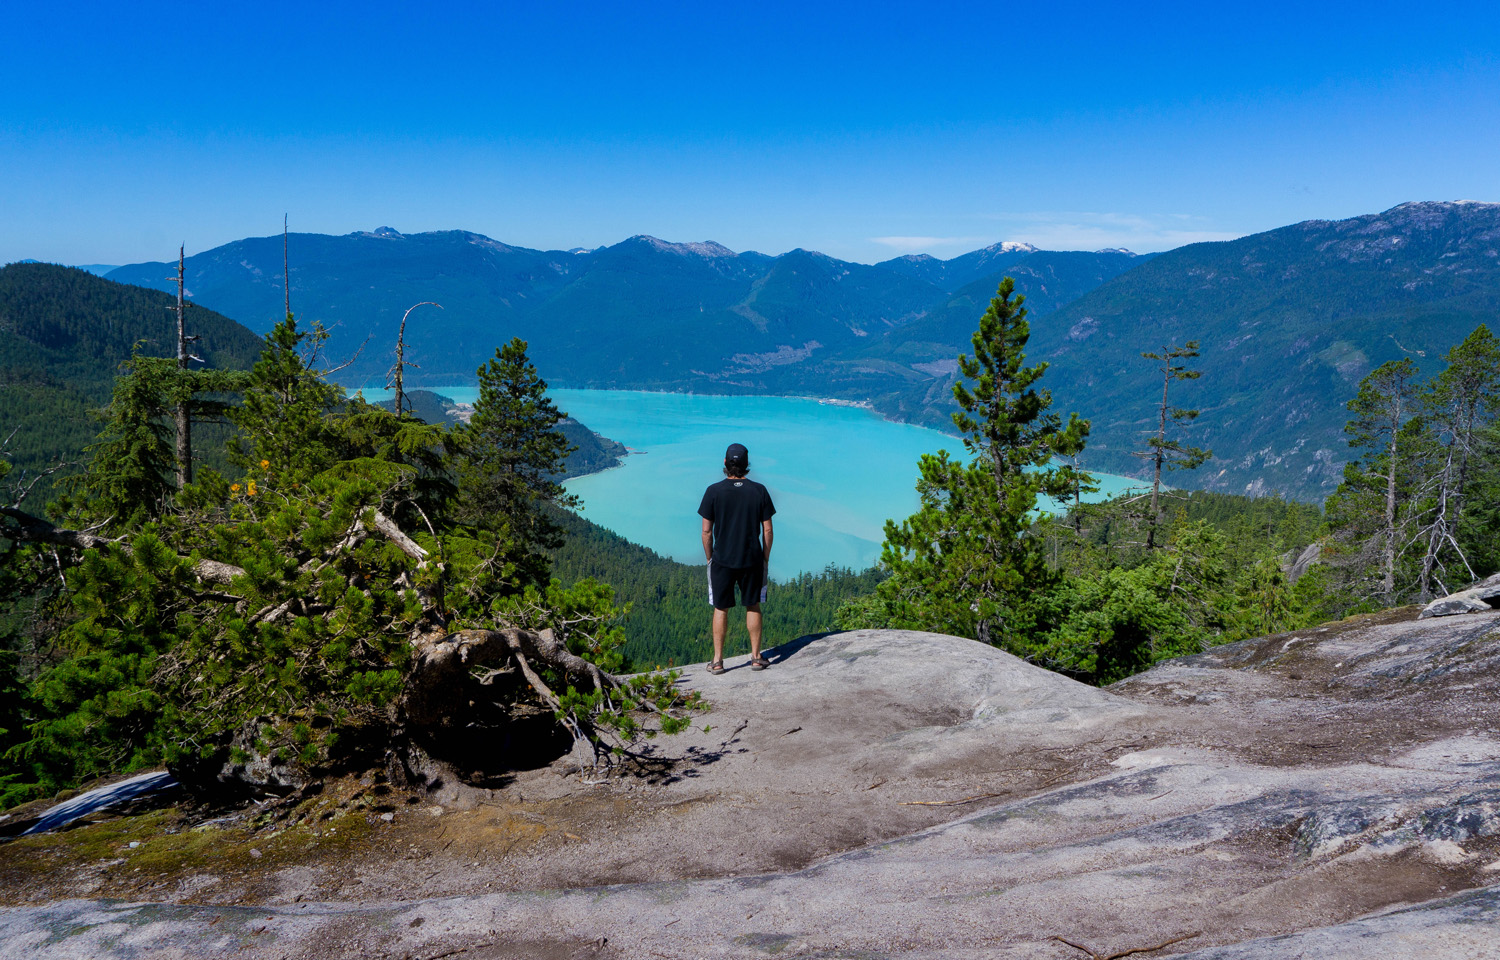 Take the Sea To Sky Gondola up to the summit of Squamish where you can explore hiking trails, a suspension bridge and more.If you're feeling adventurous, hike the StawamusChief to the top.